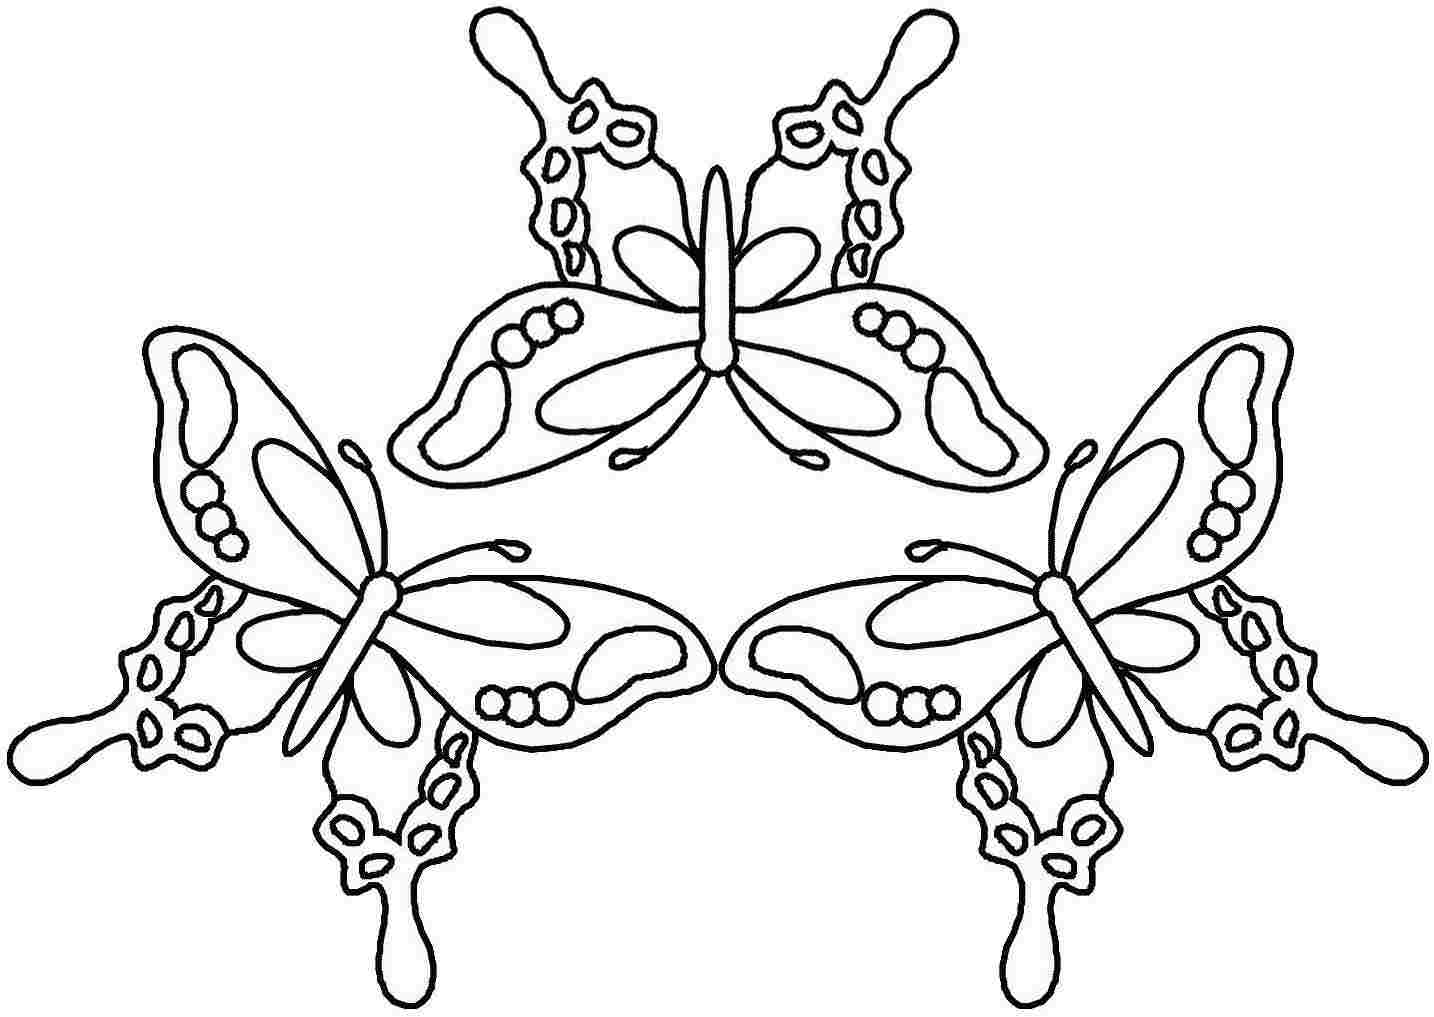 Butterfly coloring pages 360coloringpages for Butterfly coloring pages